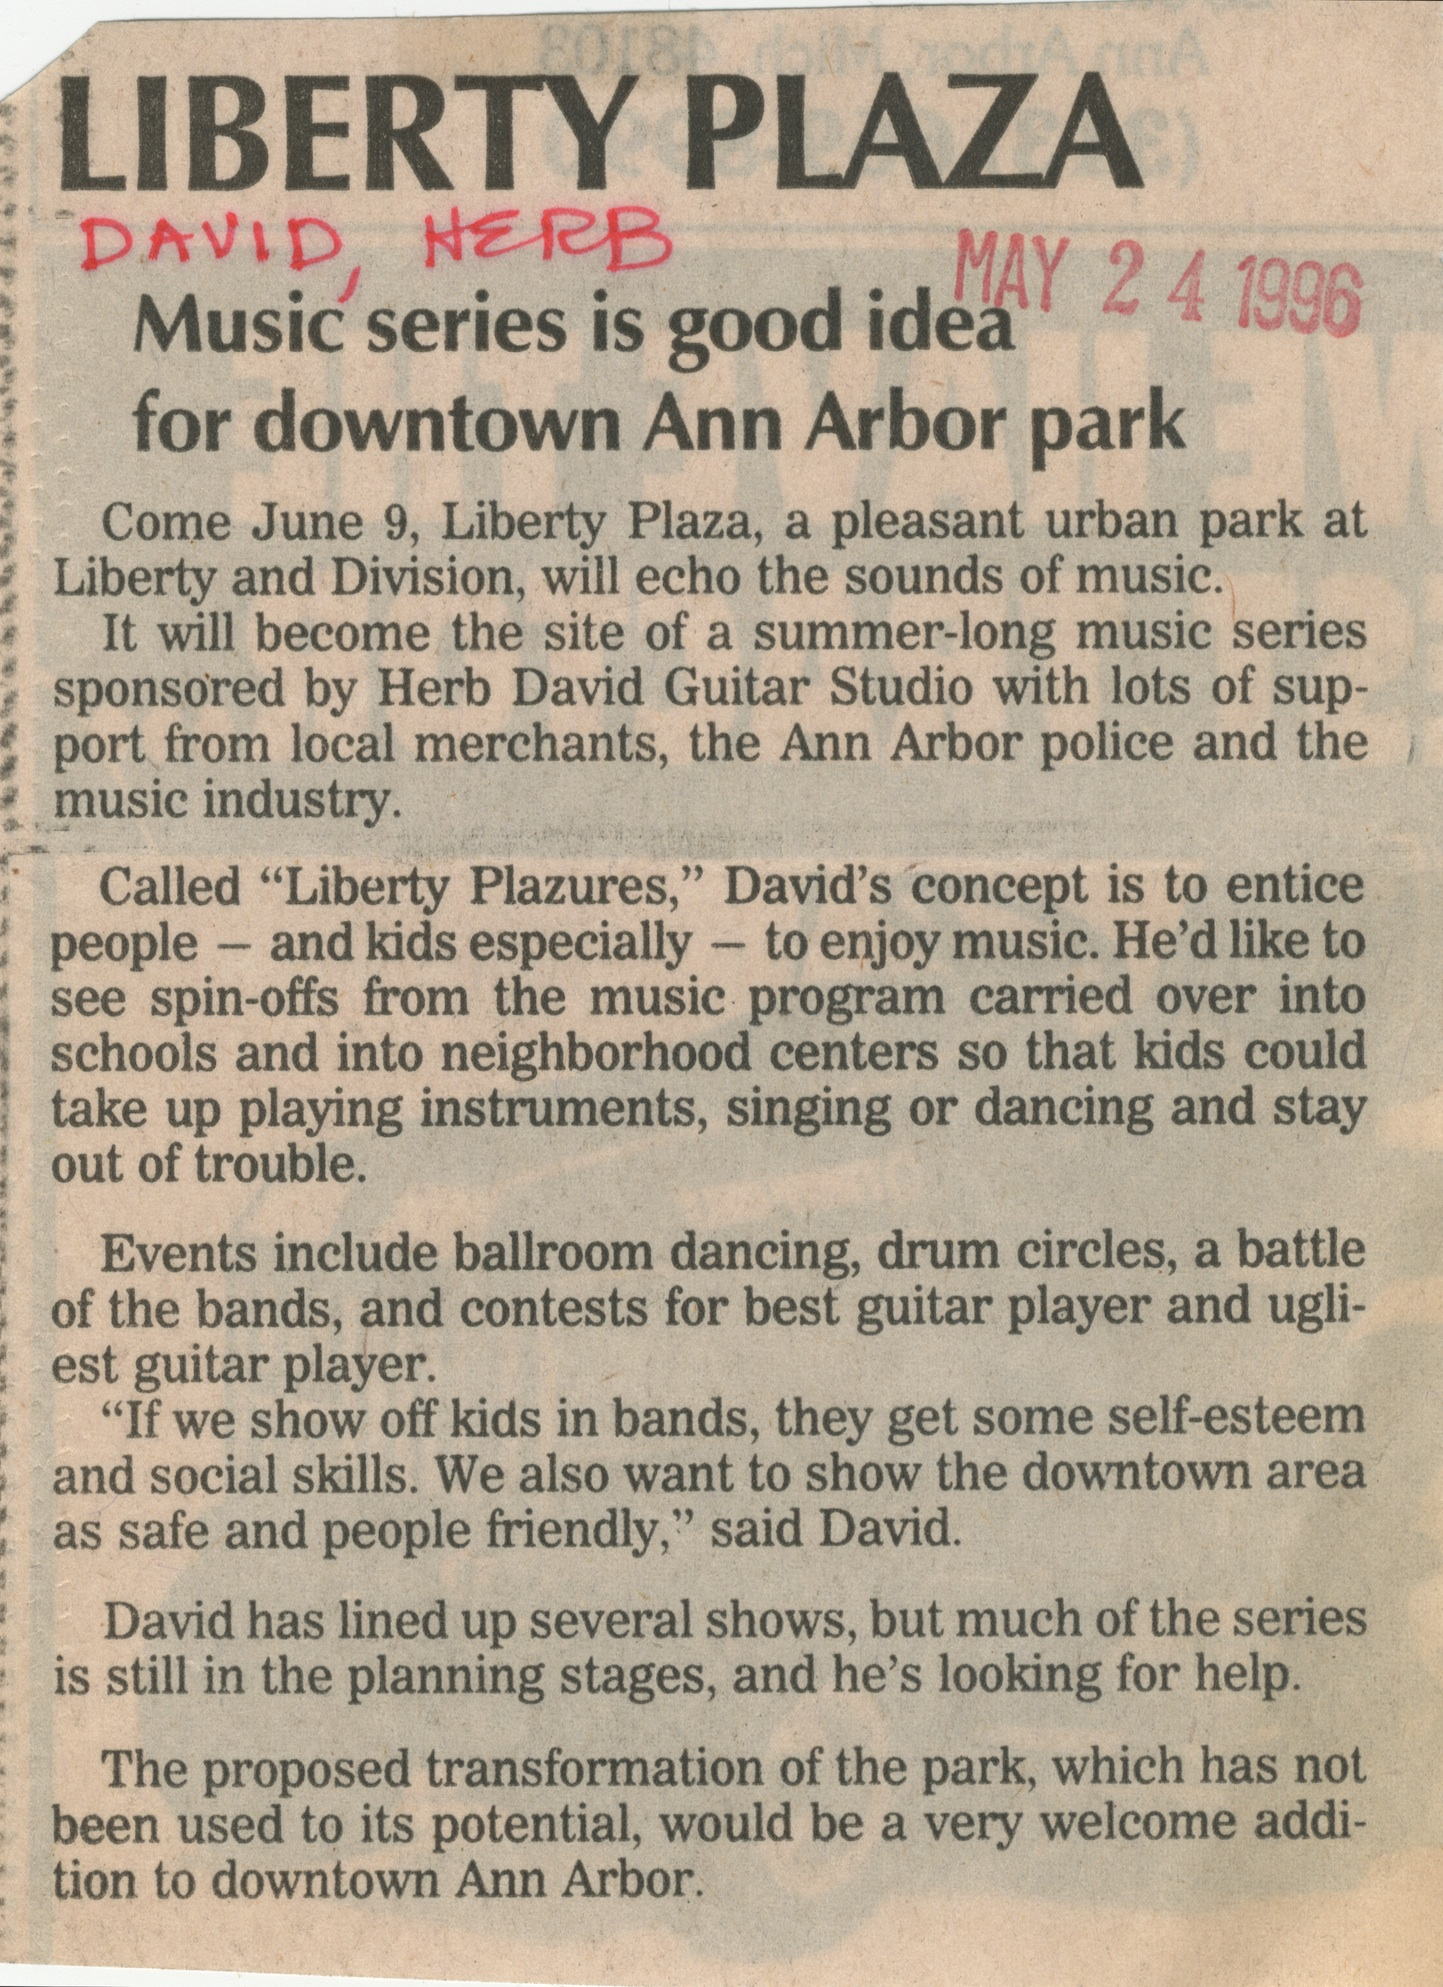 Liberty Plaza - Music Series Is Good Idea For Downtown Ann Arbor image